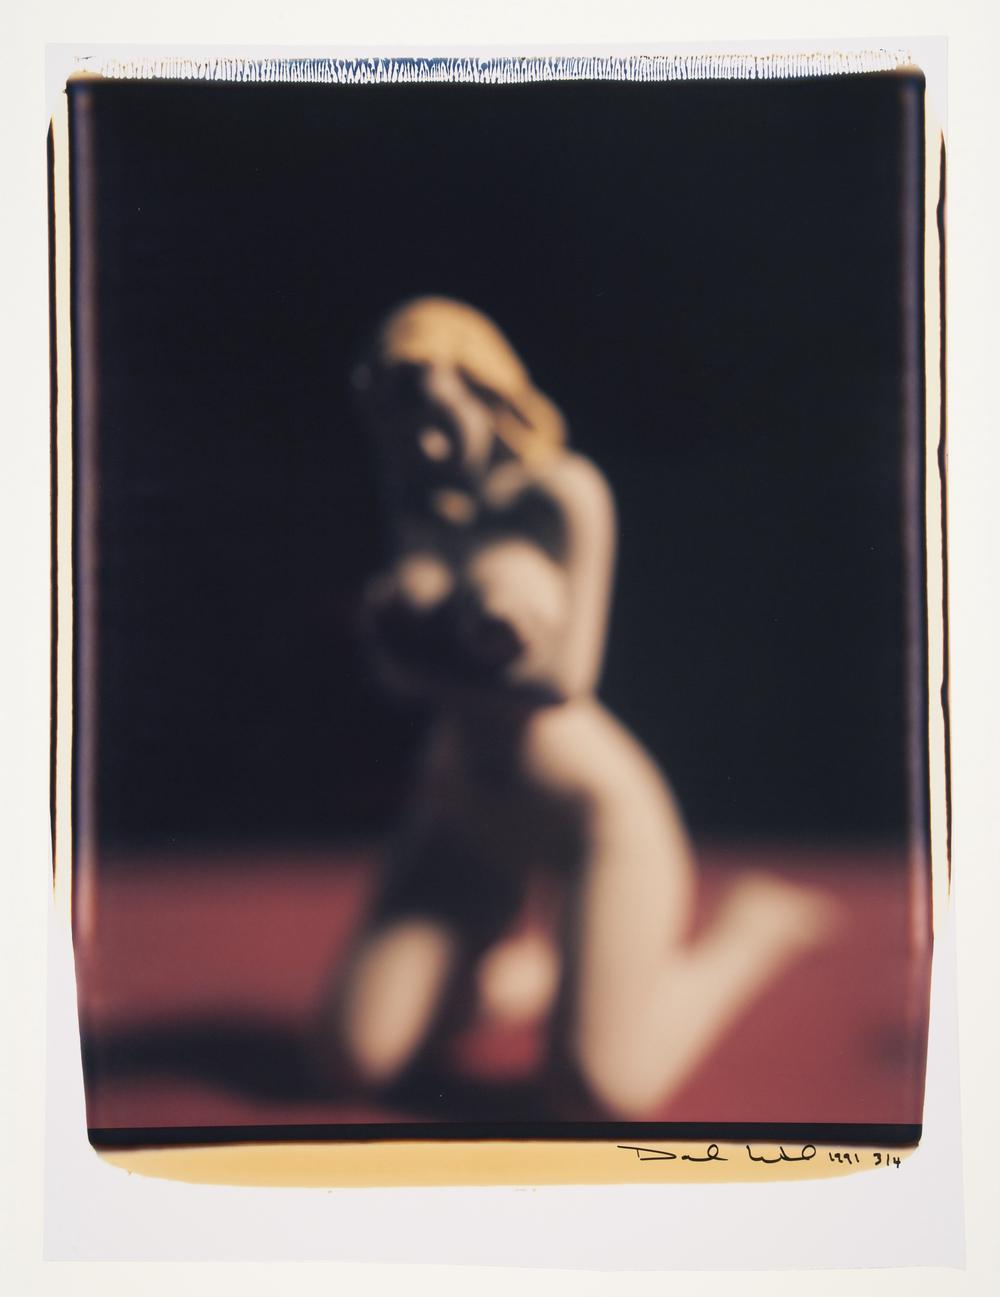 blurry image of nude blonde woman kneeling and facing the viewer while trying to cover herself